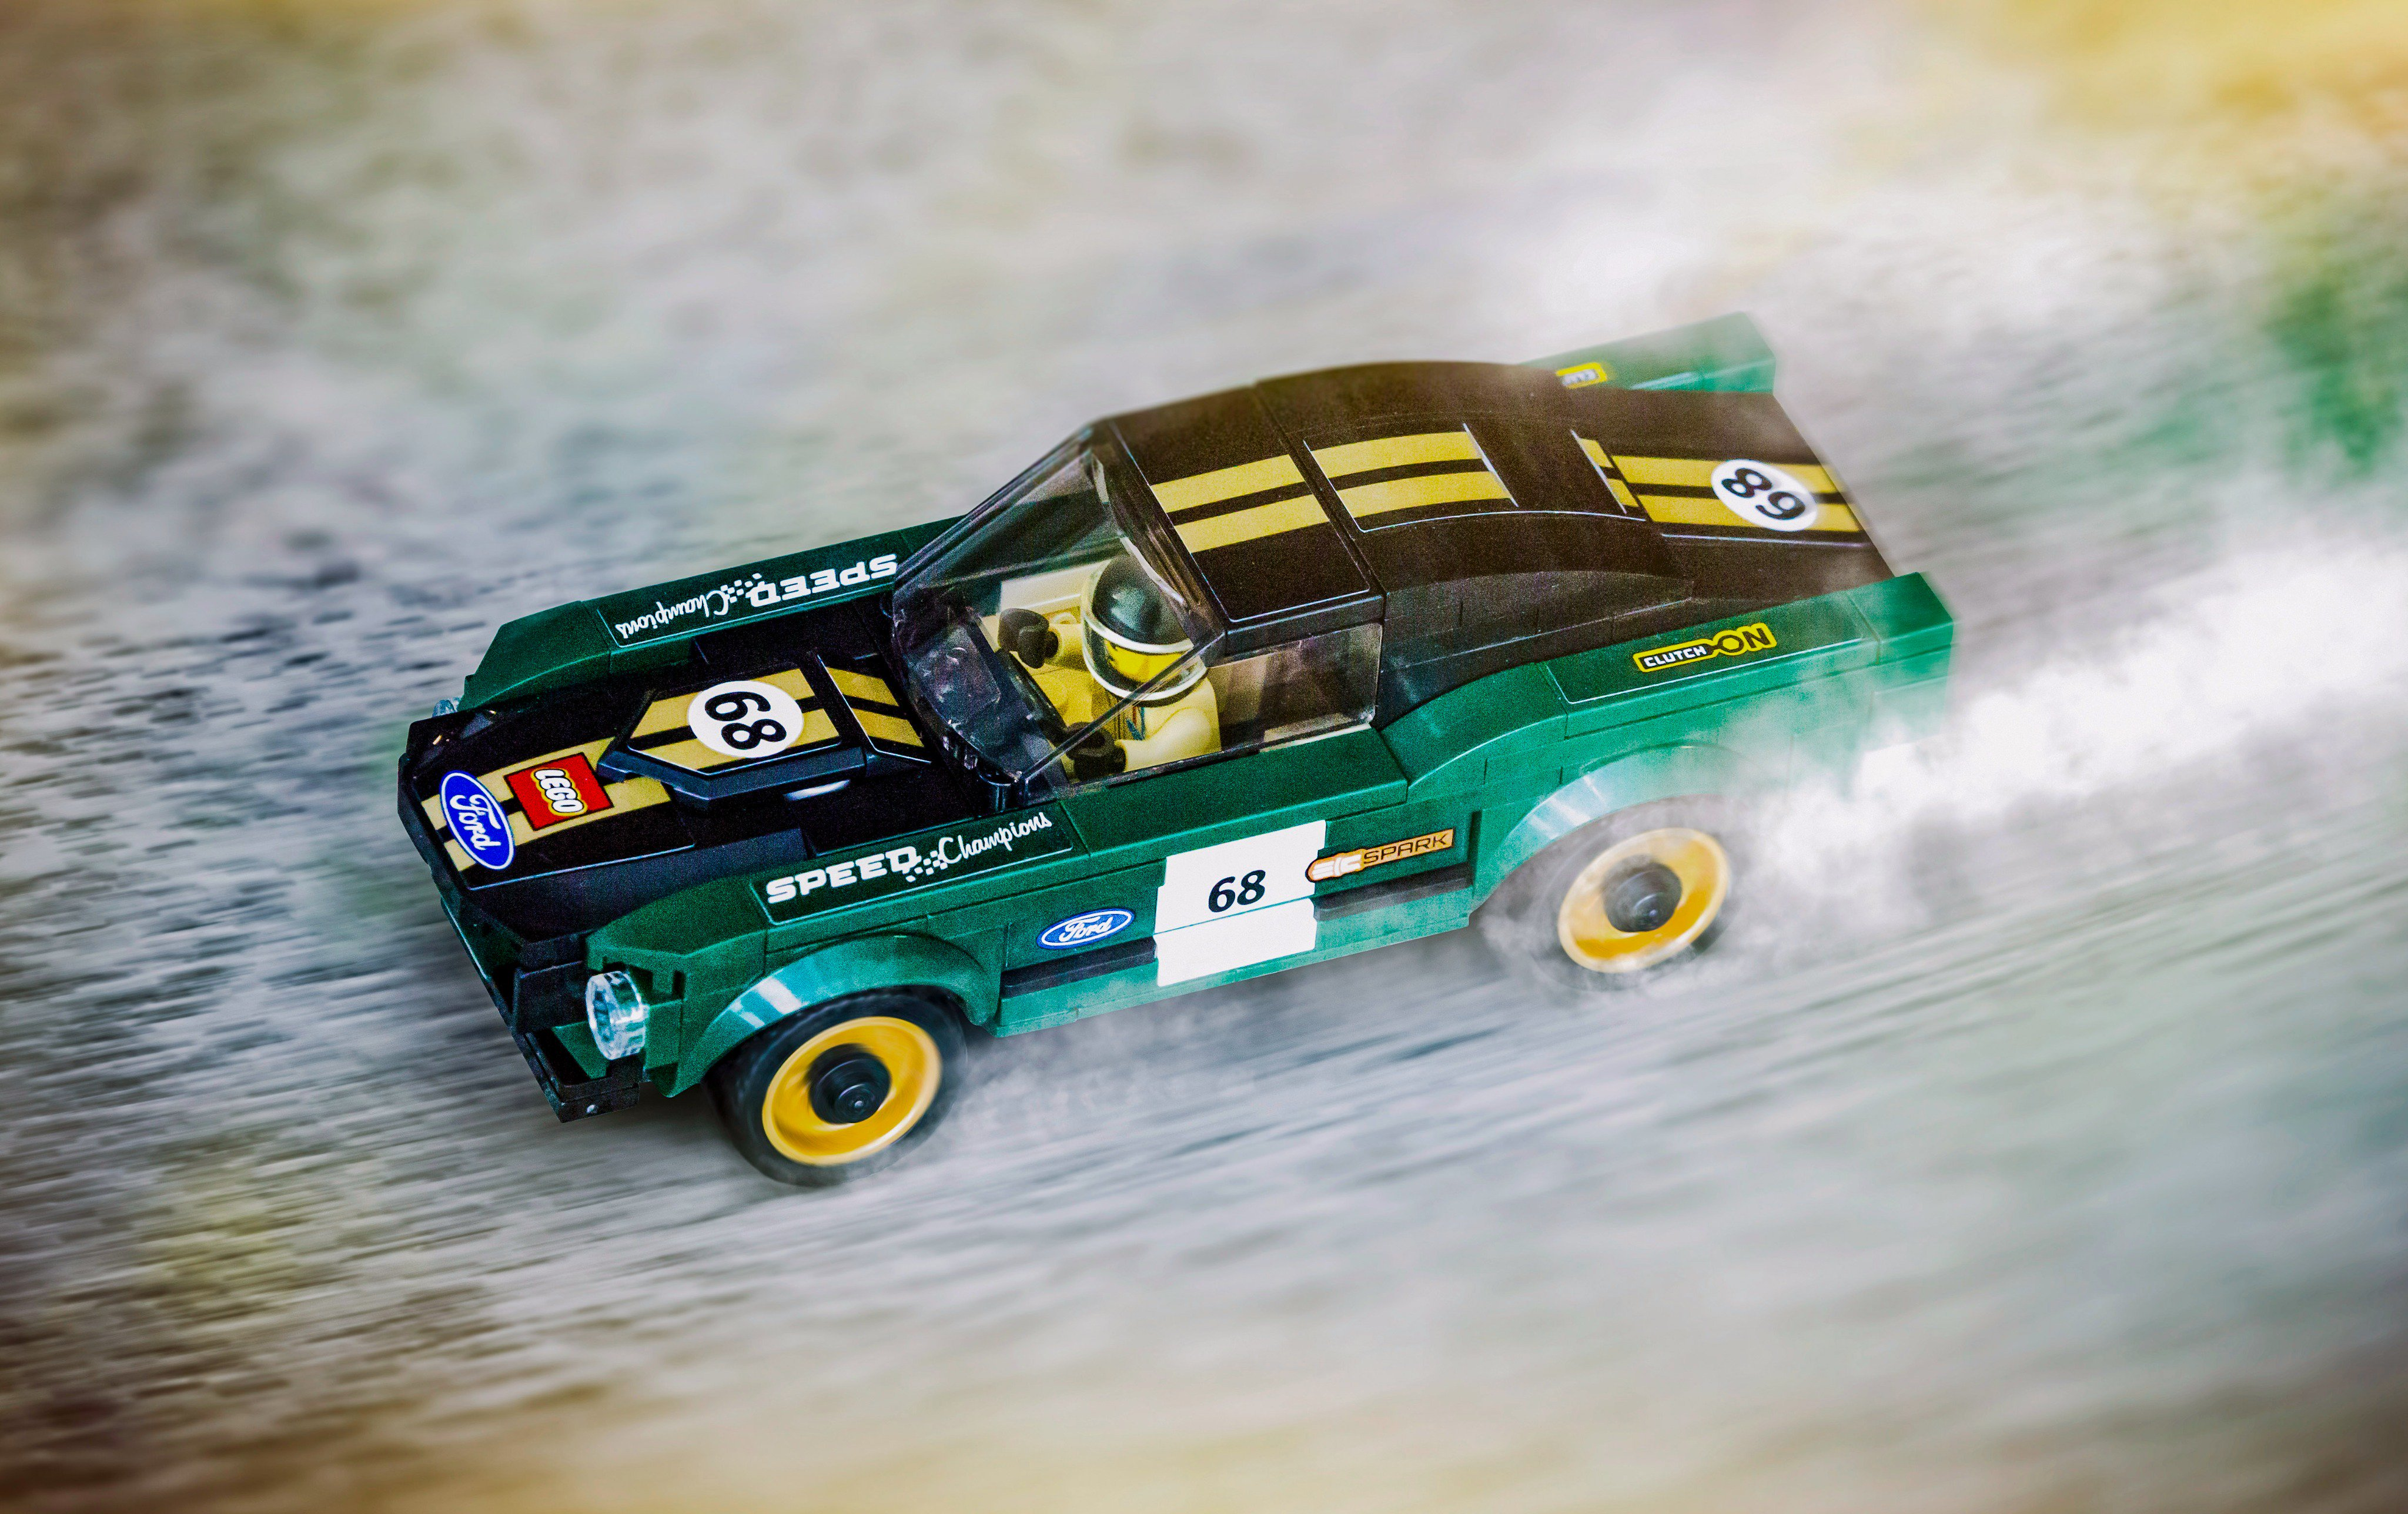 lego speed champions  sets unveiled due march  jays brick blog